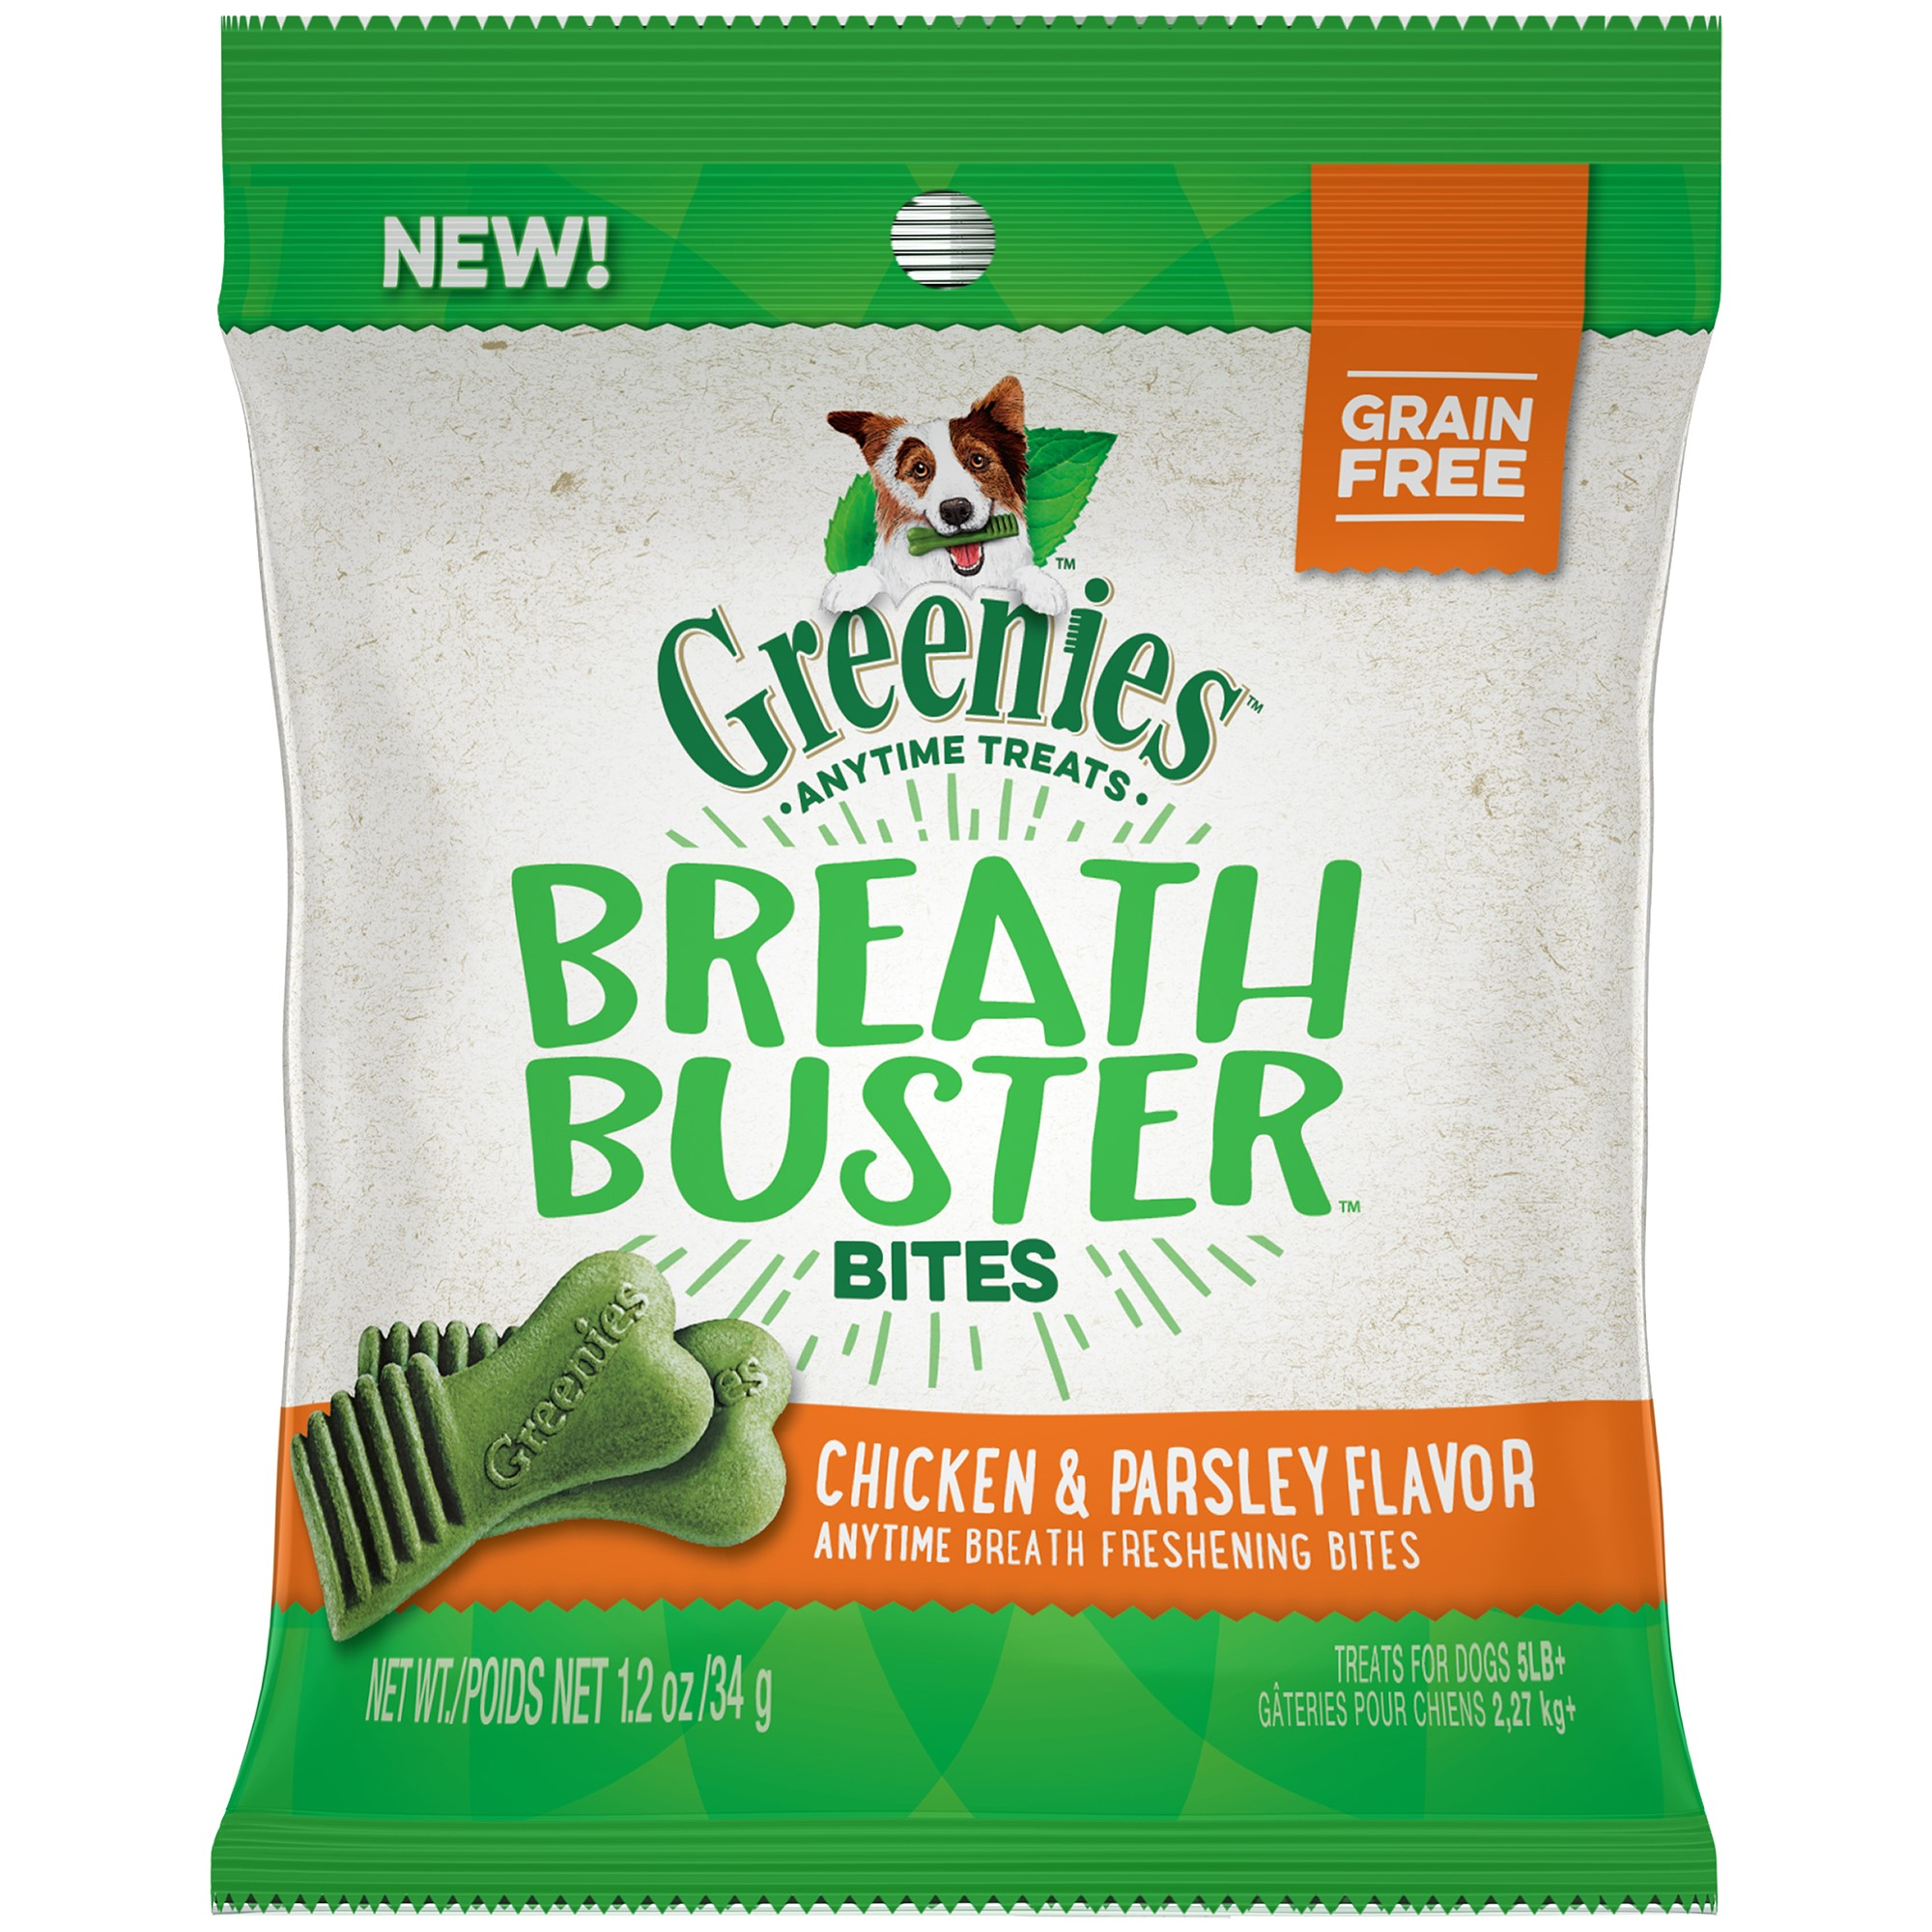 Greenies Breath Buster Bites Chicken & Parsley Flavor Treats for Dogs 1.2 Ounces